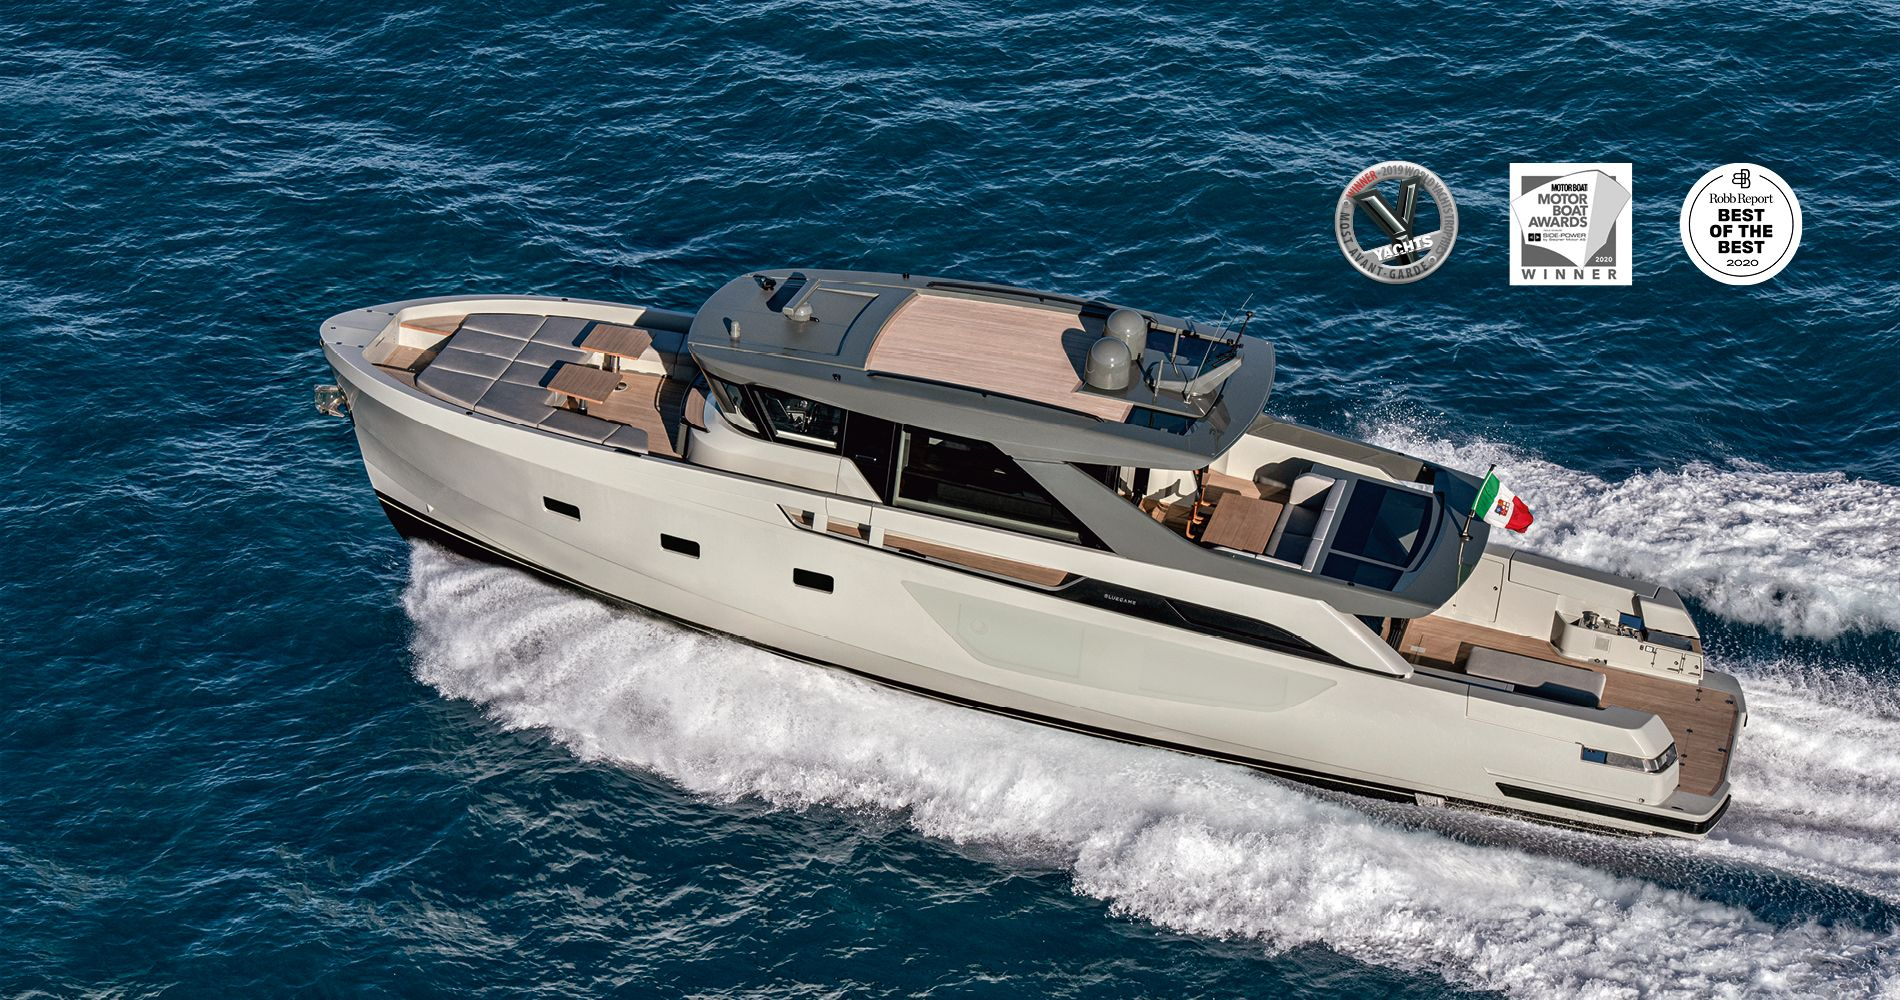 BGX 70 Bluegame Yachts in 2020 Yacht design, Classic